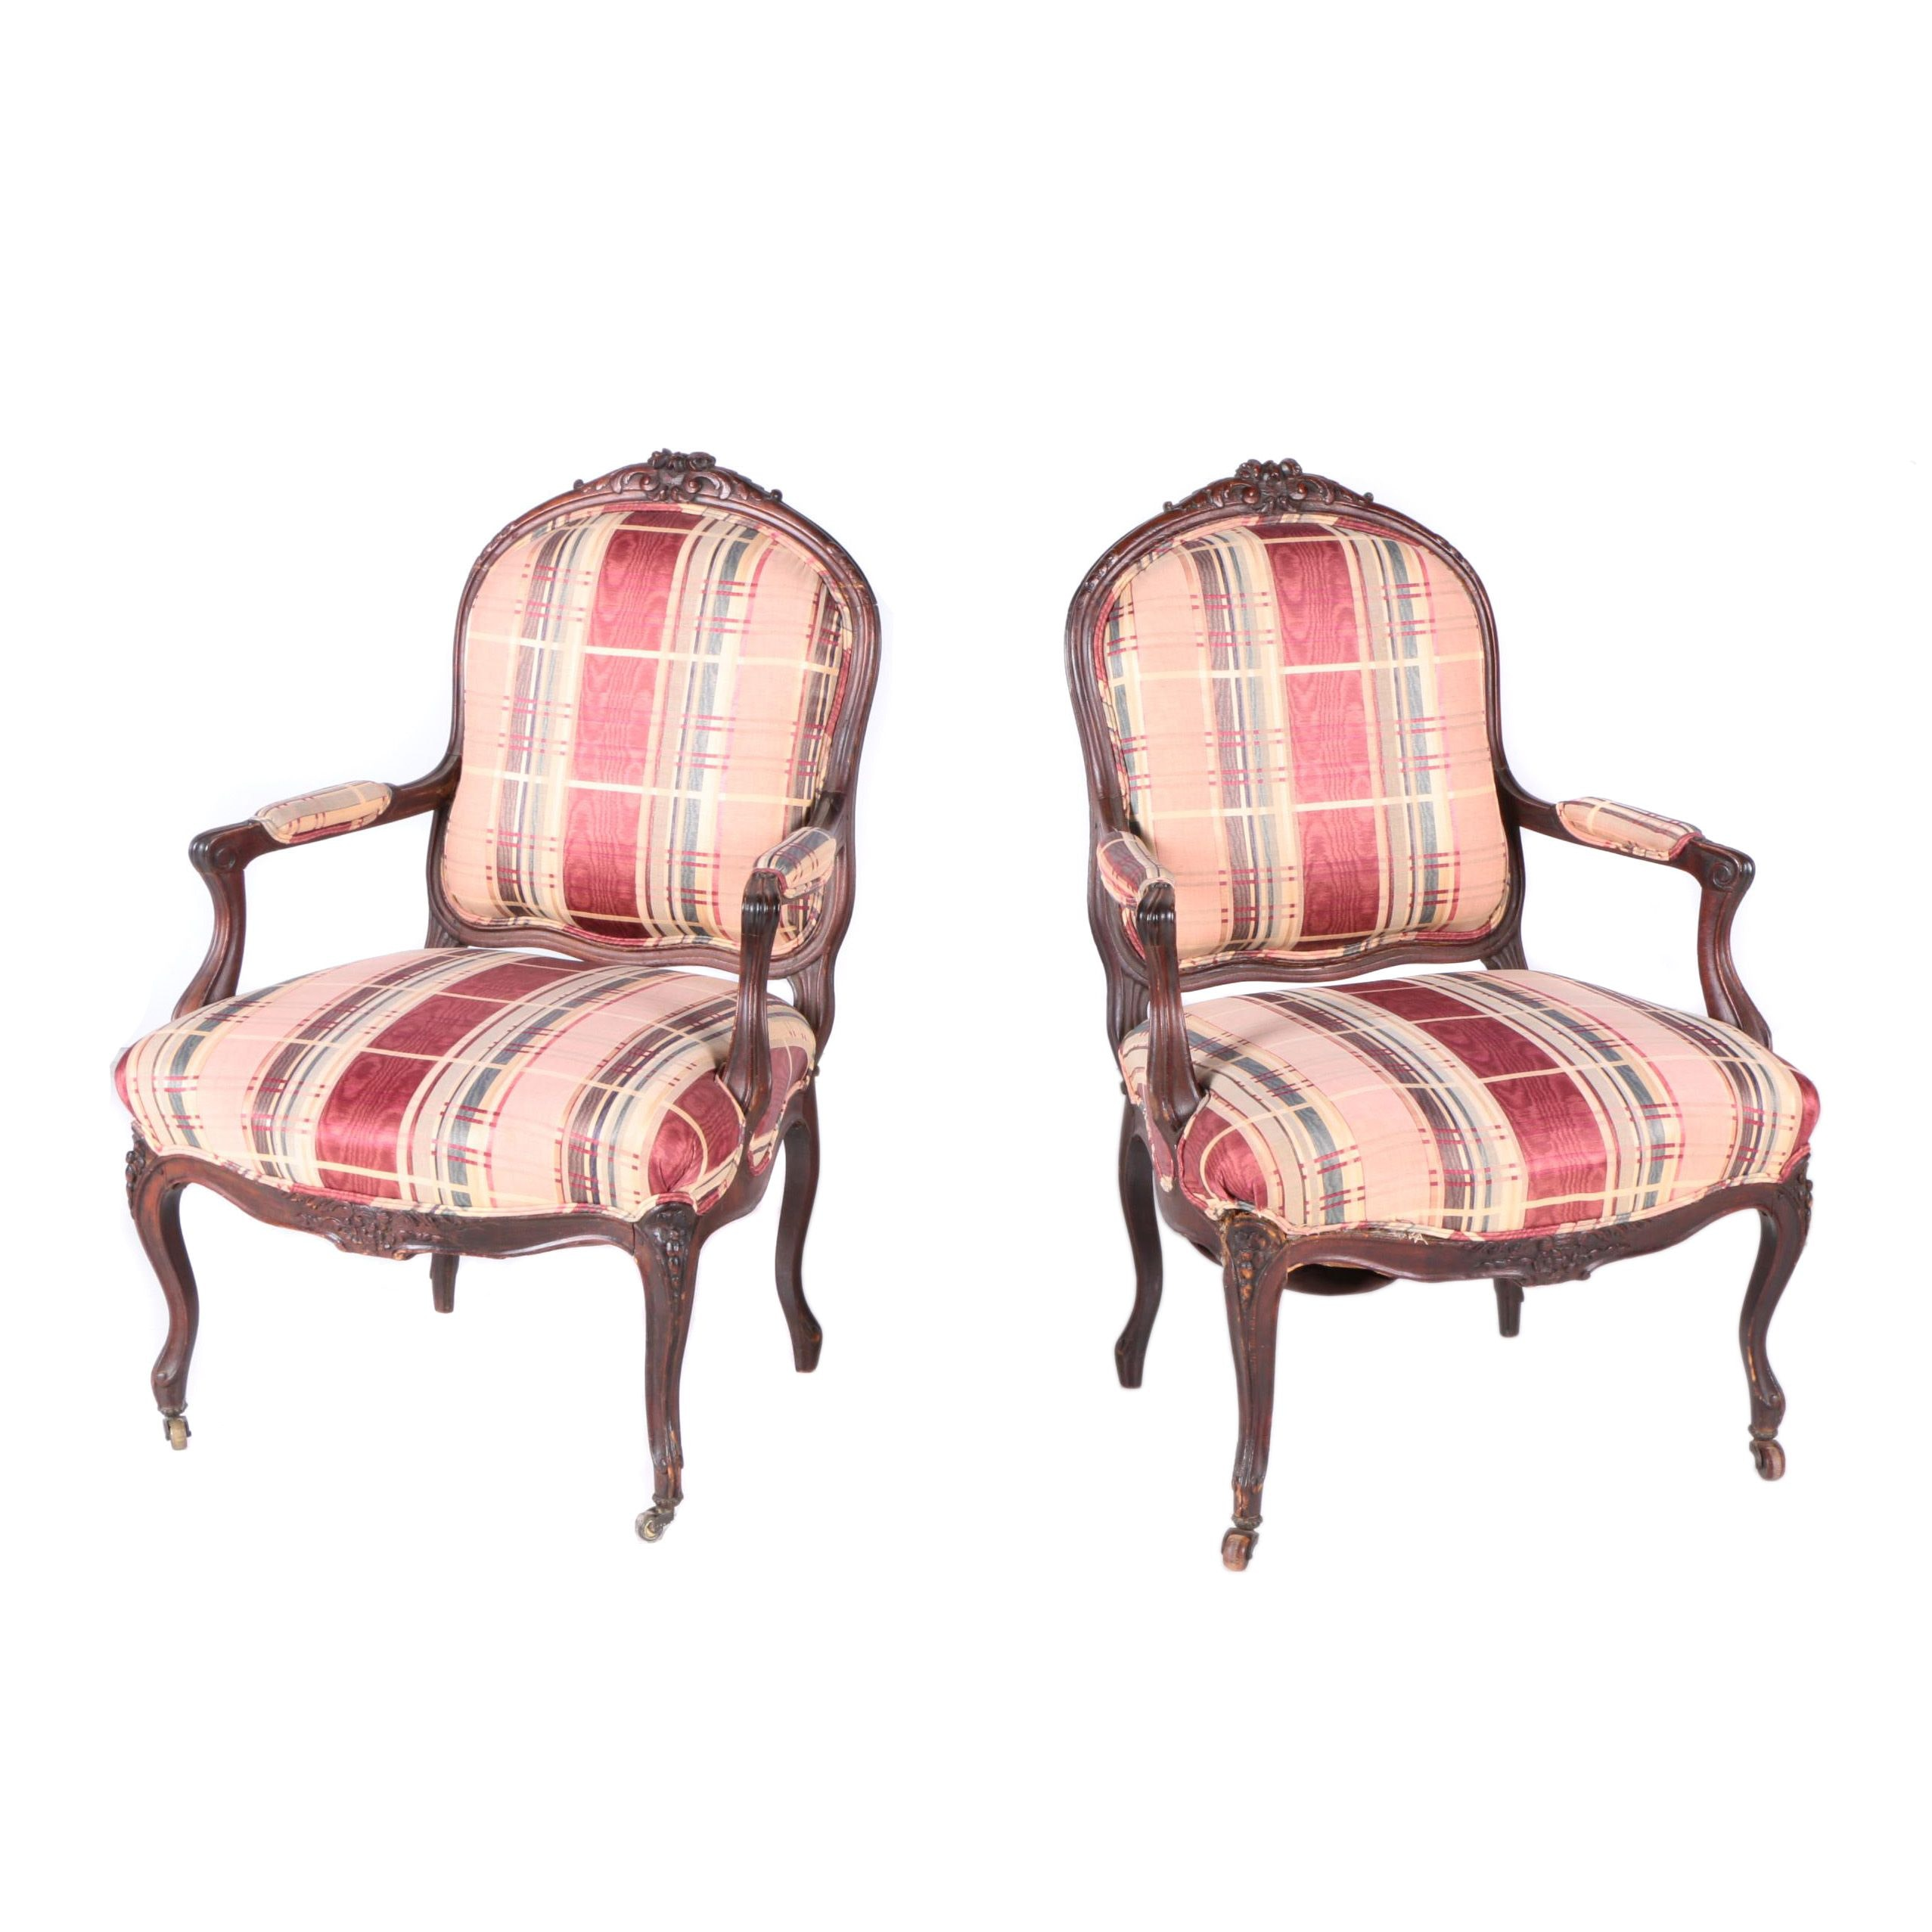 Two Antique Louis XV Style Fauteuil